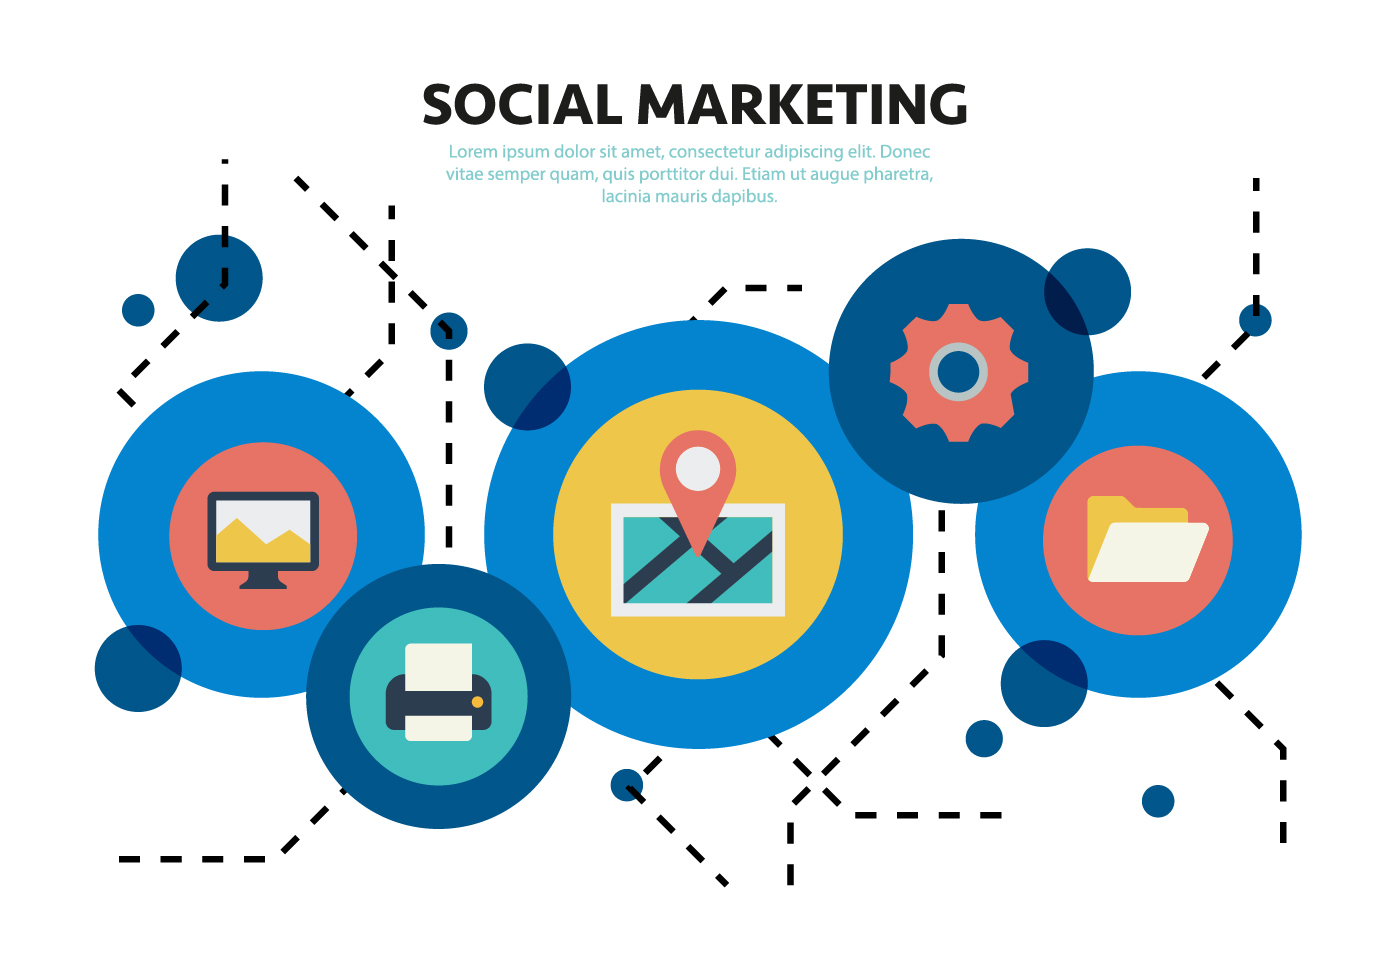 free-social-media-marketing-vector-elements.jpg